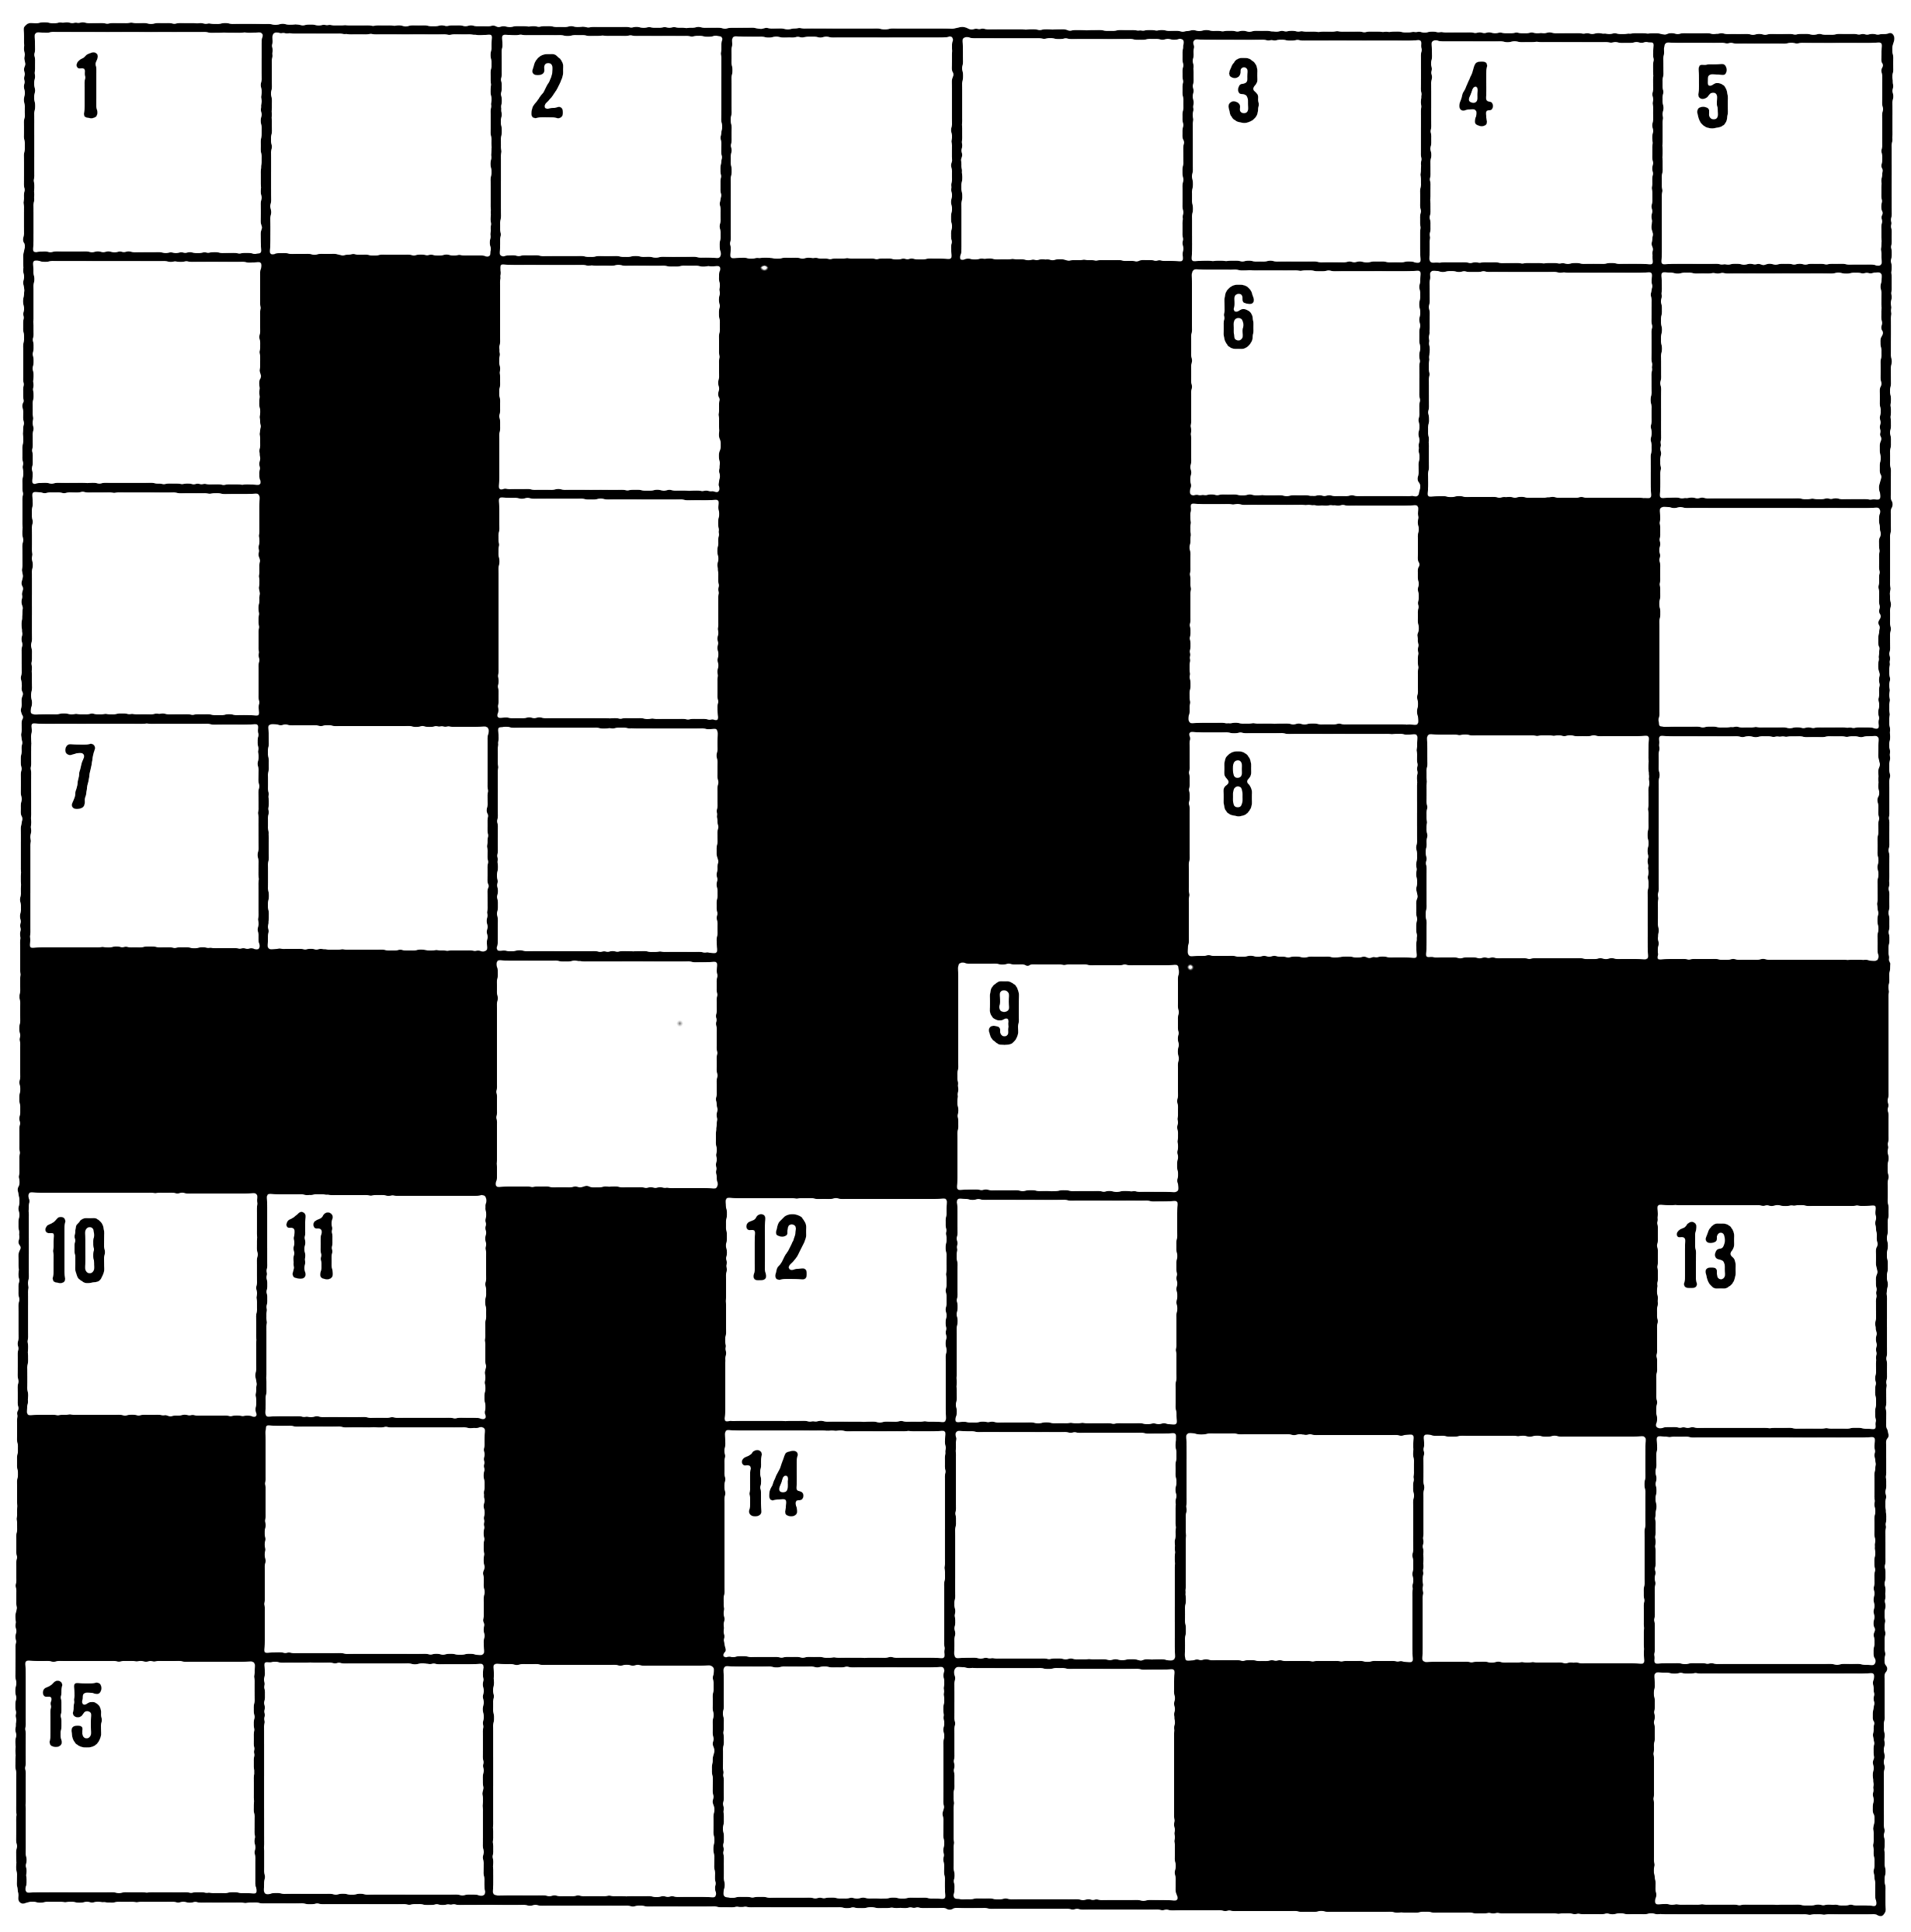 File:Crossword (PSF).png.